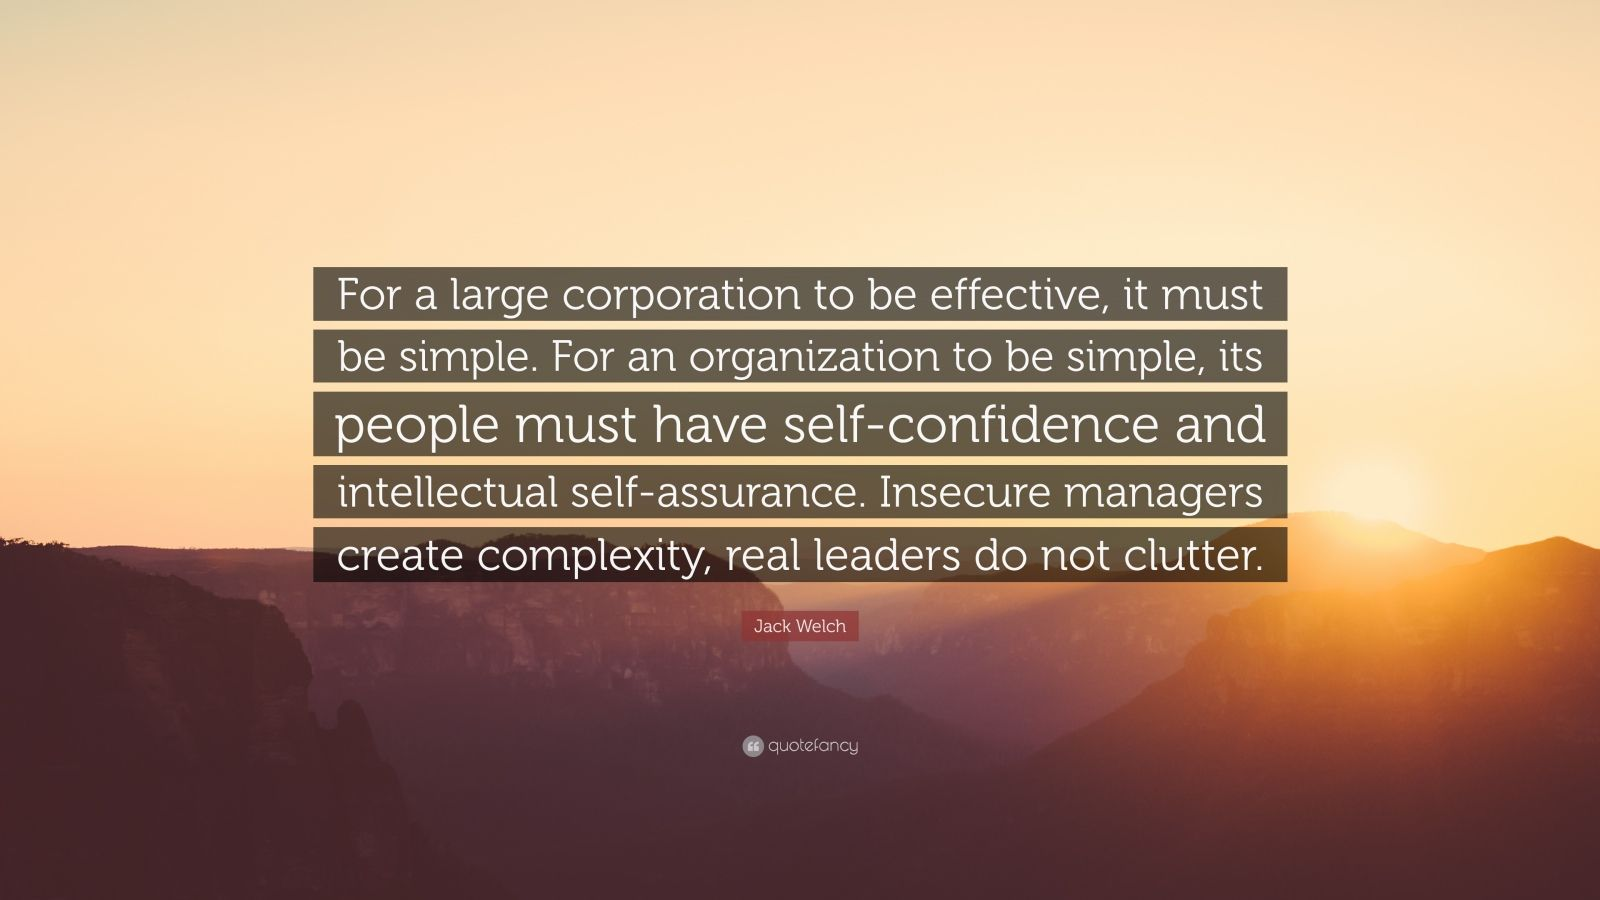 """Jack Welch Quote: """"For a large corporation to be effective, it must be simple. For an organization to be simple, its people must have self-confidence and intellectual self-assurance. Insecure managers create complexity, real leaders do not clutter."""""""